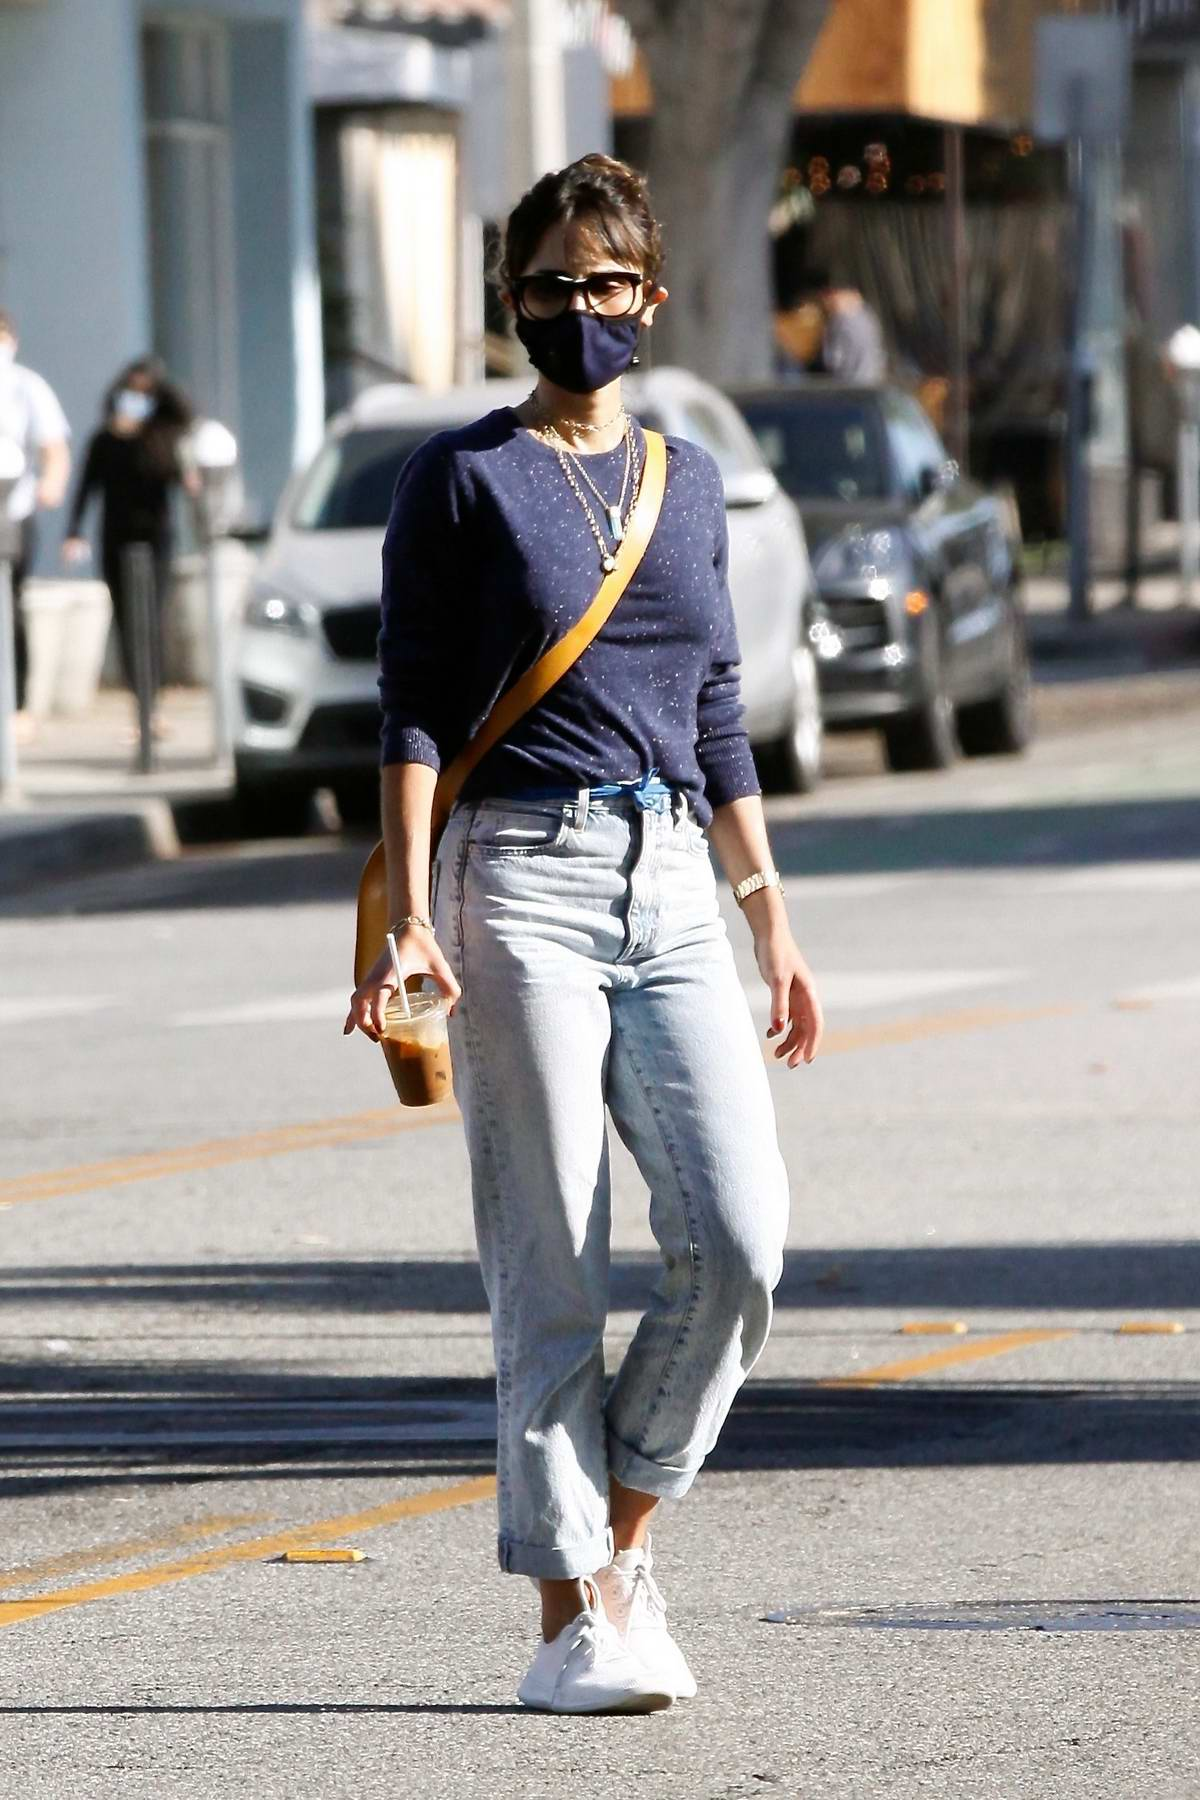 Jordana Brewster steps out for her morning coffee in Santa Monica, California